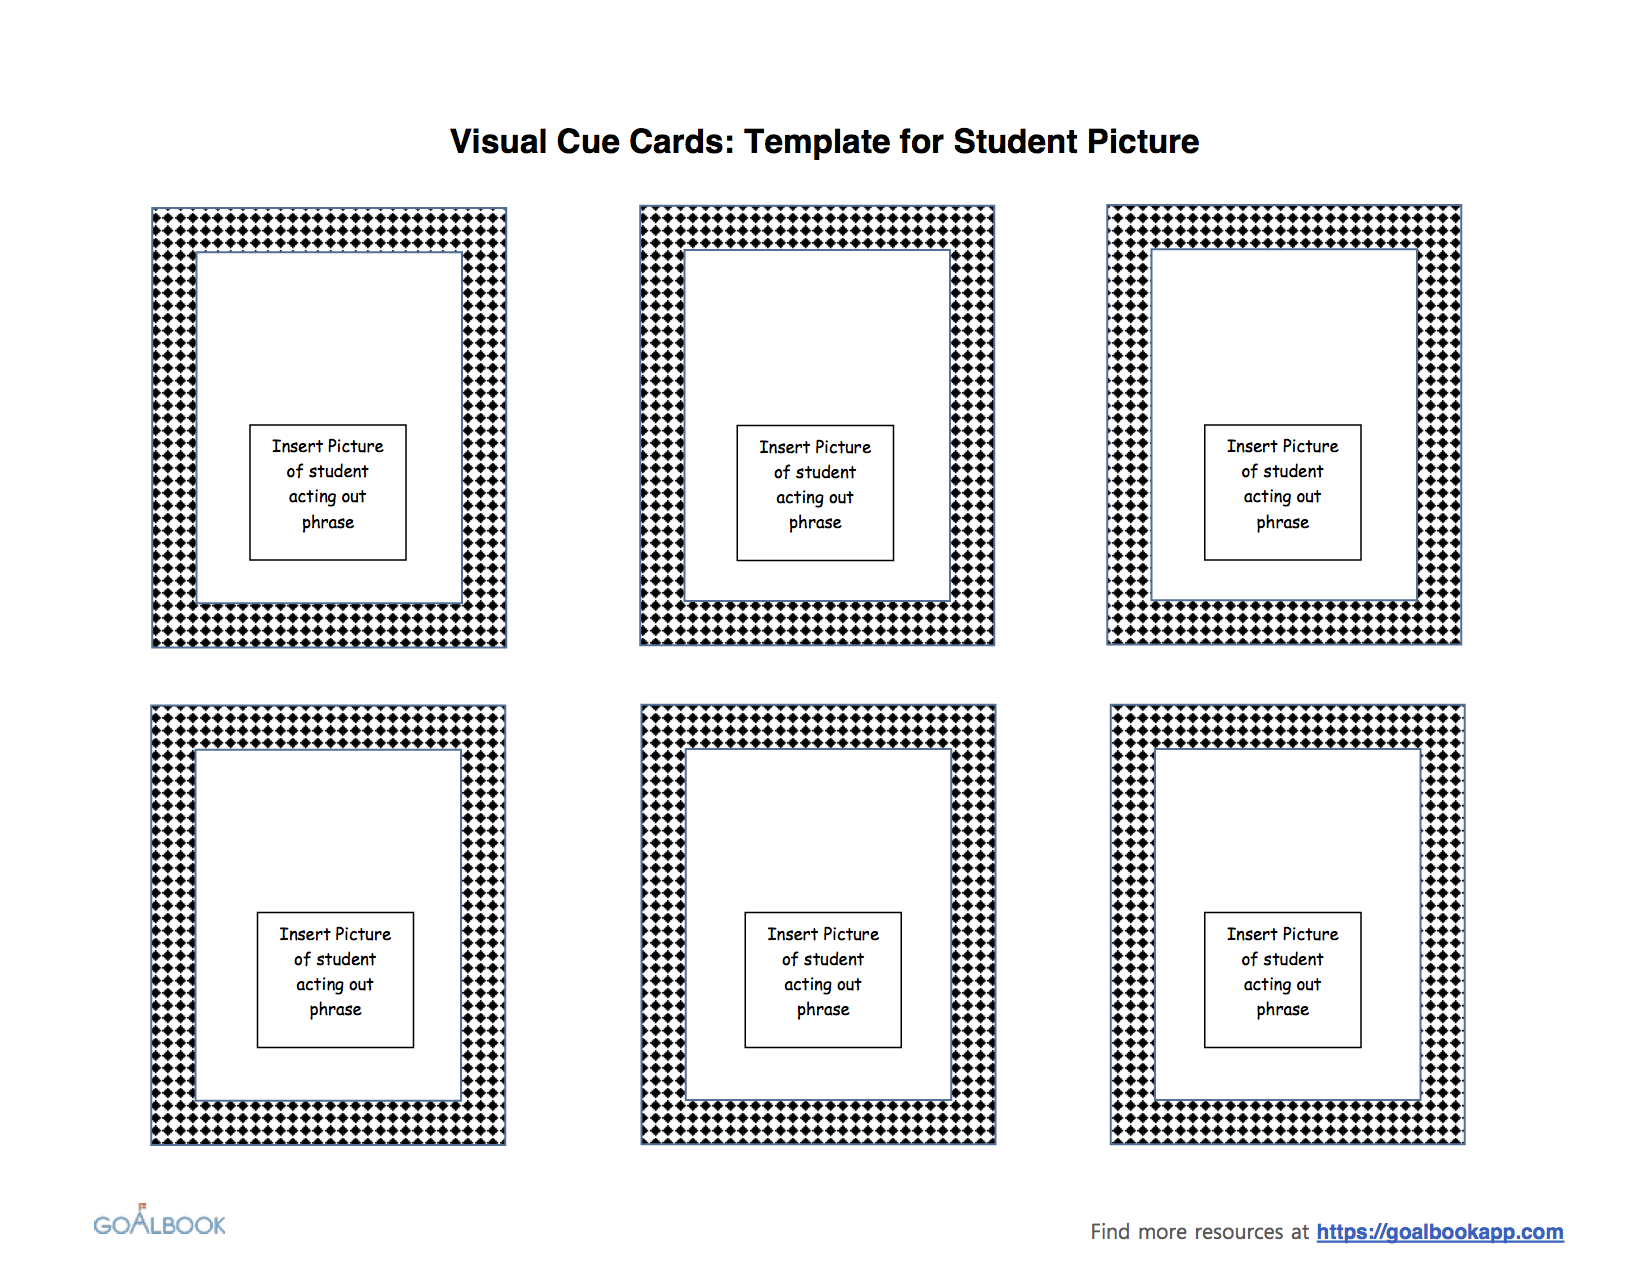 Visual Cue Cards | Udl Strategies – Goalbook Toolkit Intended For Cue Card Template